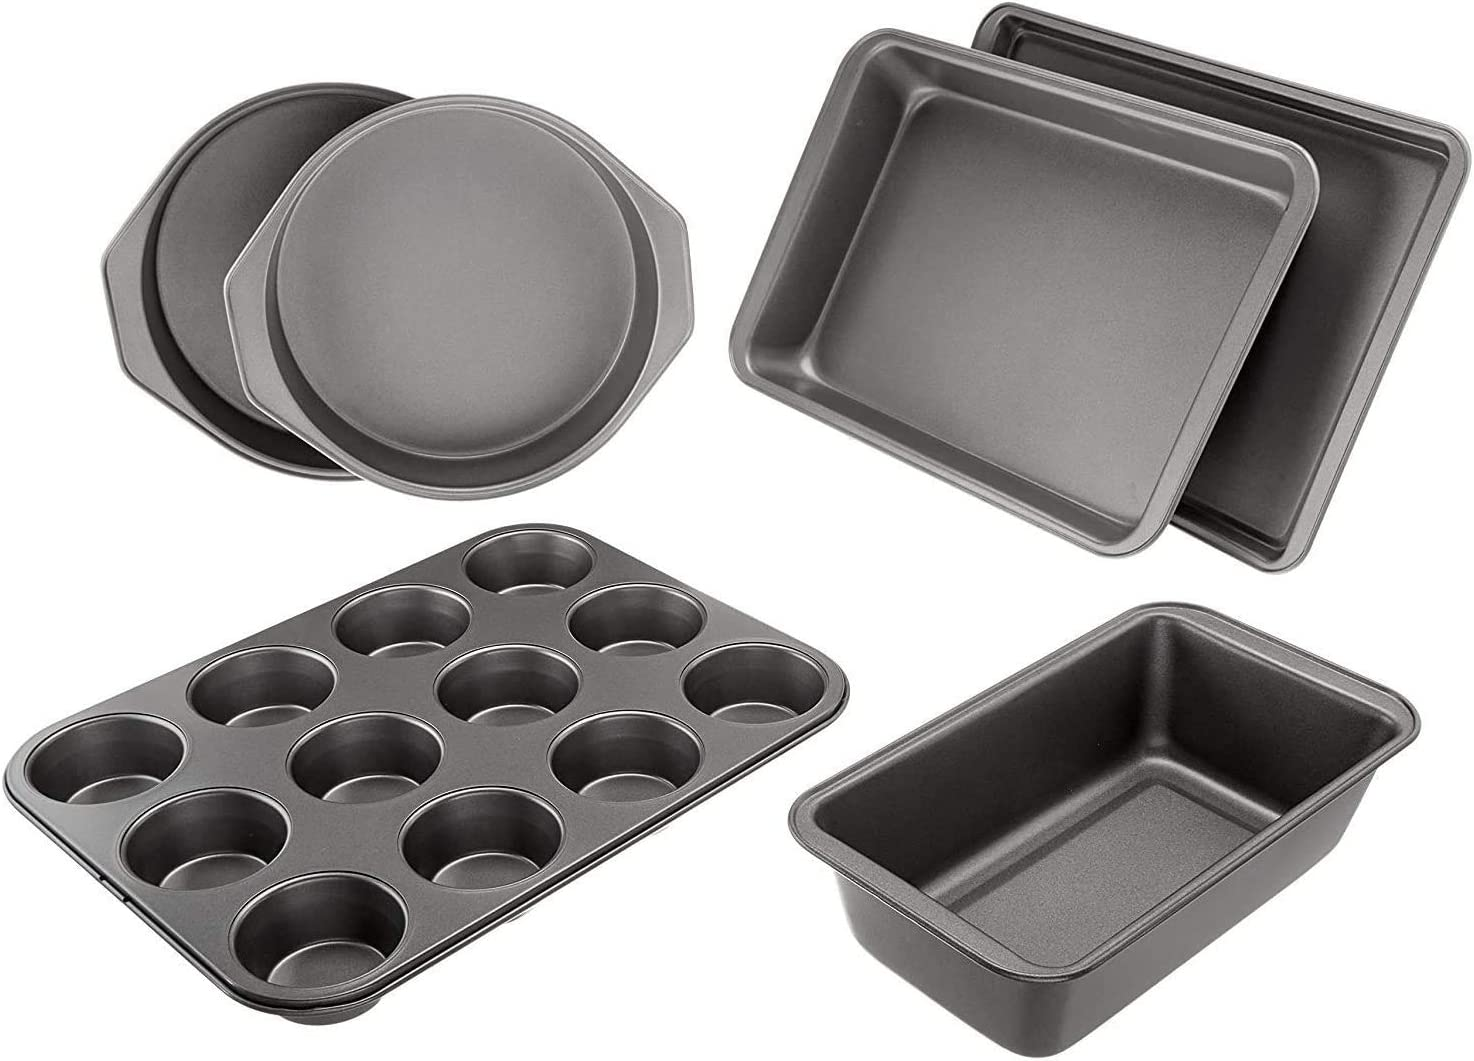 6-Piece Nonstick Oven Bakeware Baking Set